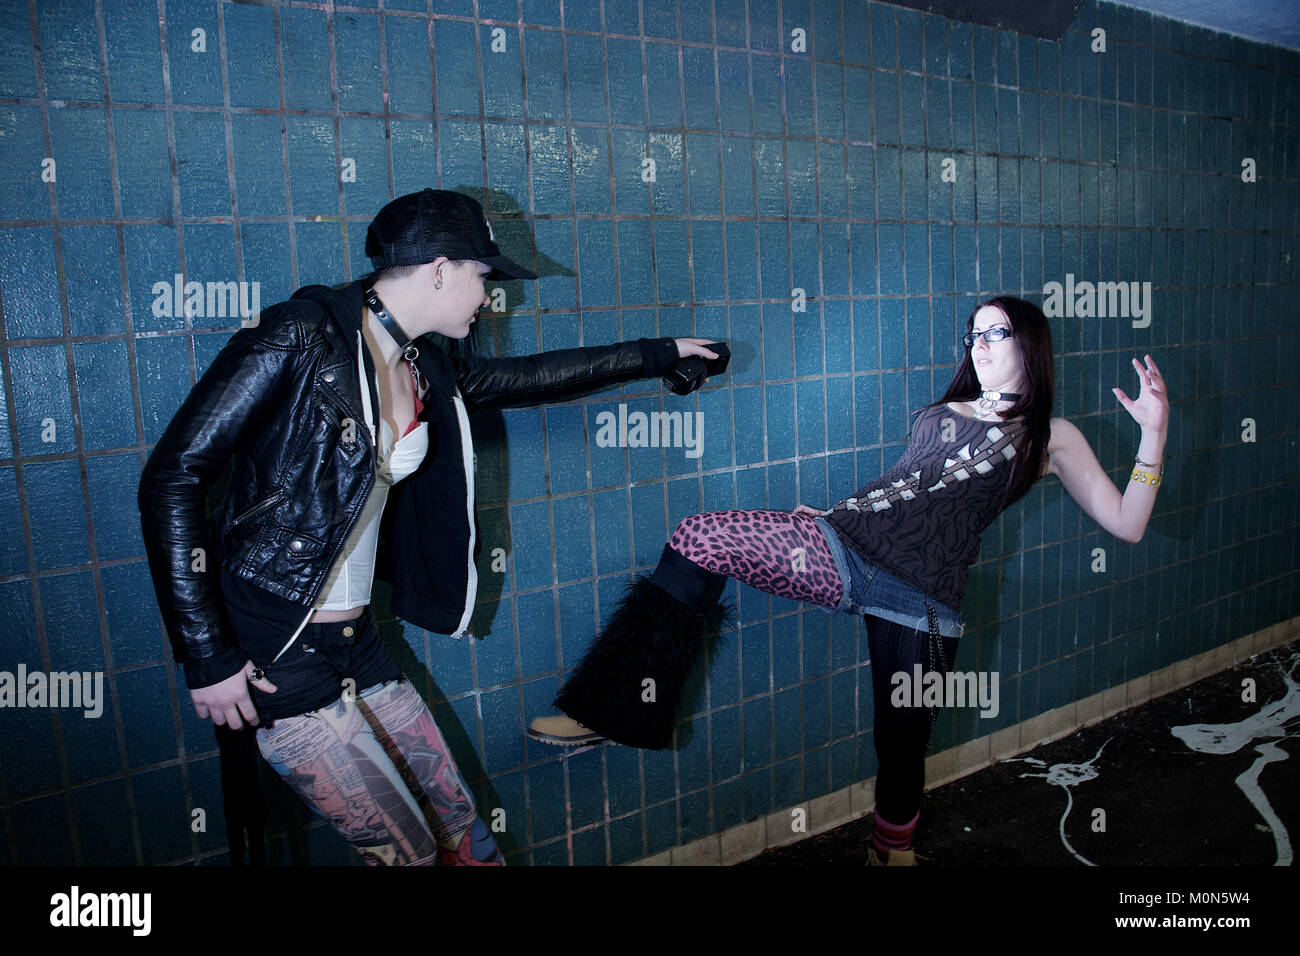 One girl shooting another with a strobe light in a subway - Stock Image